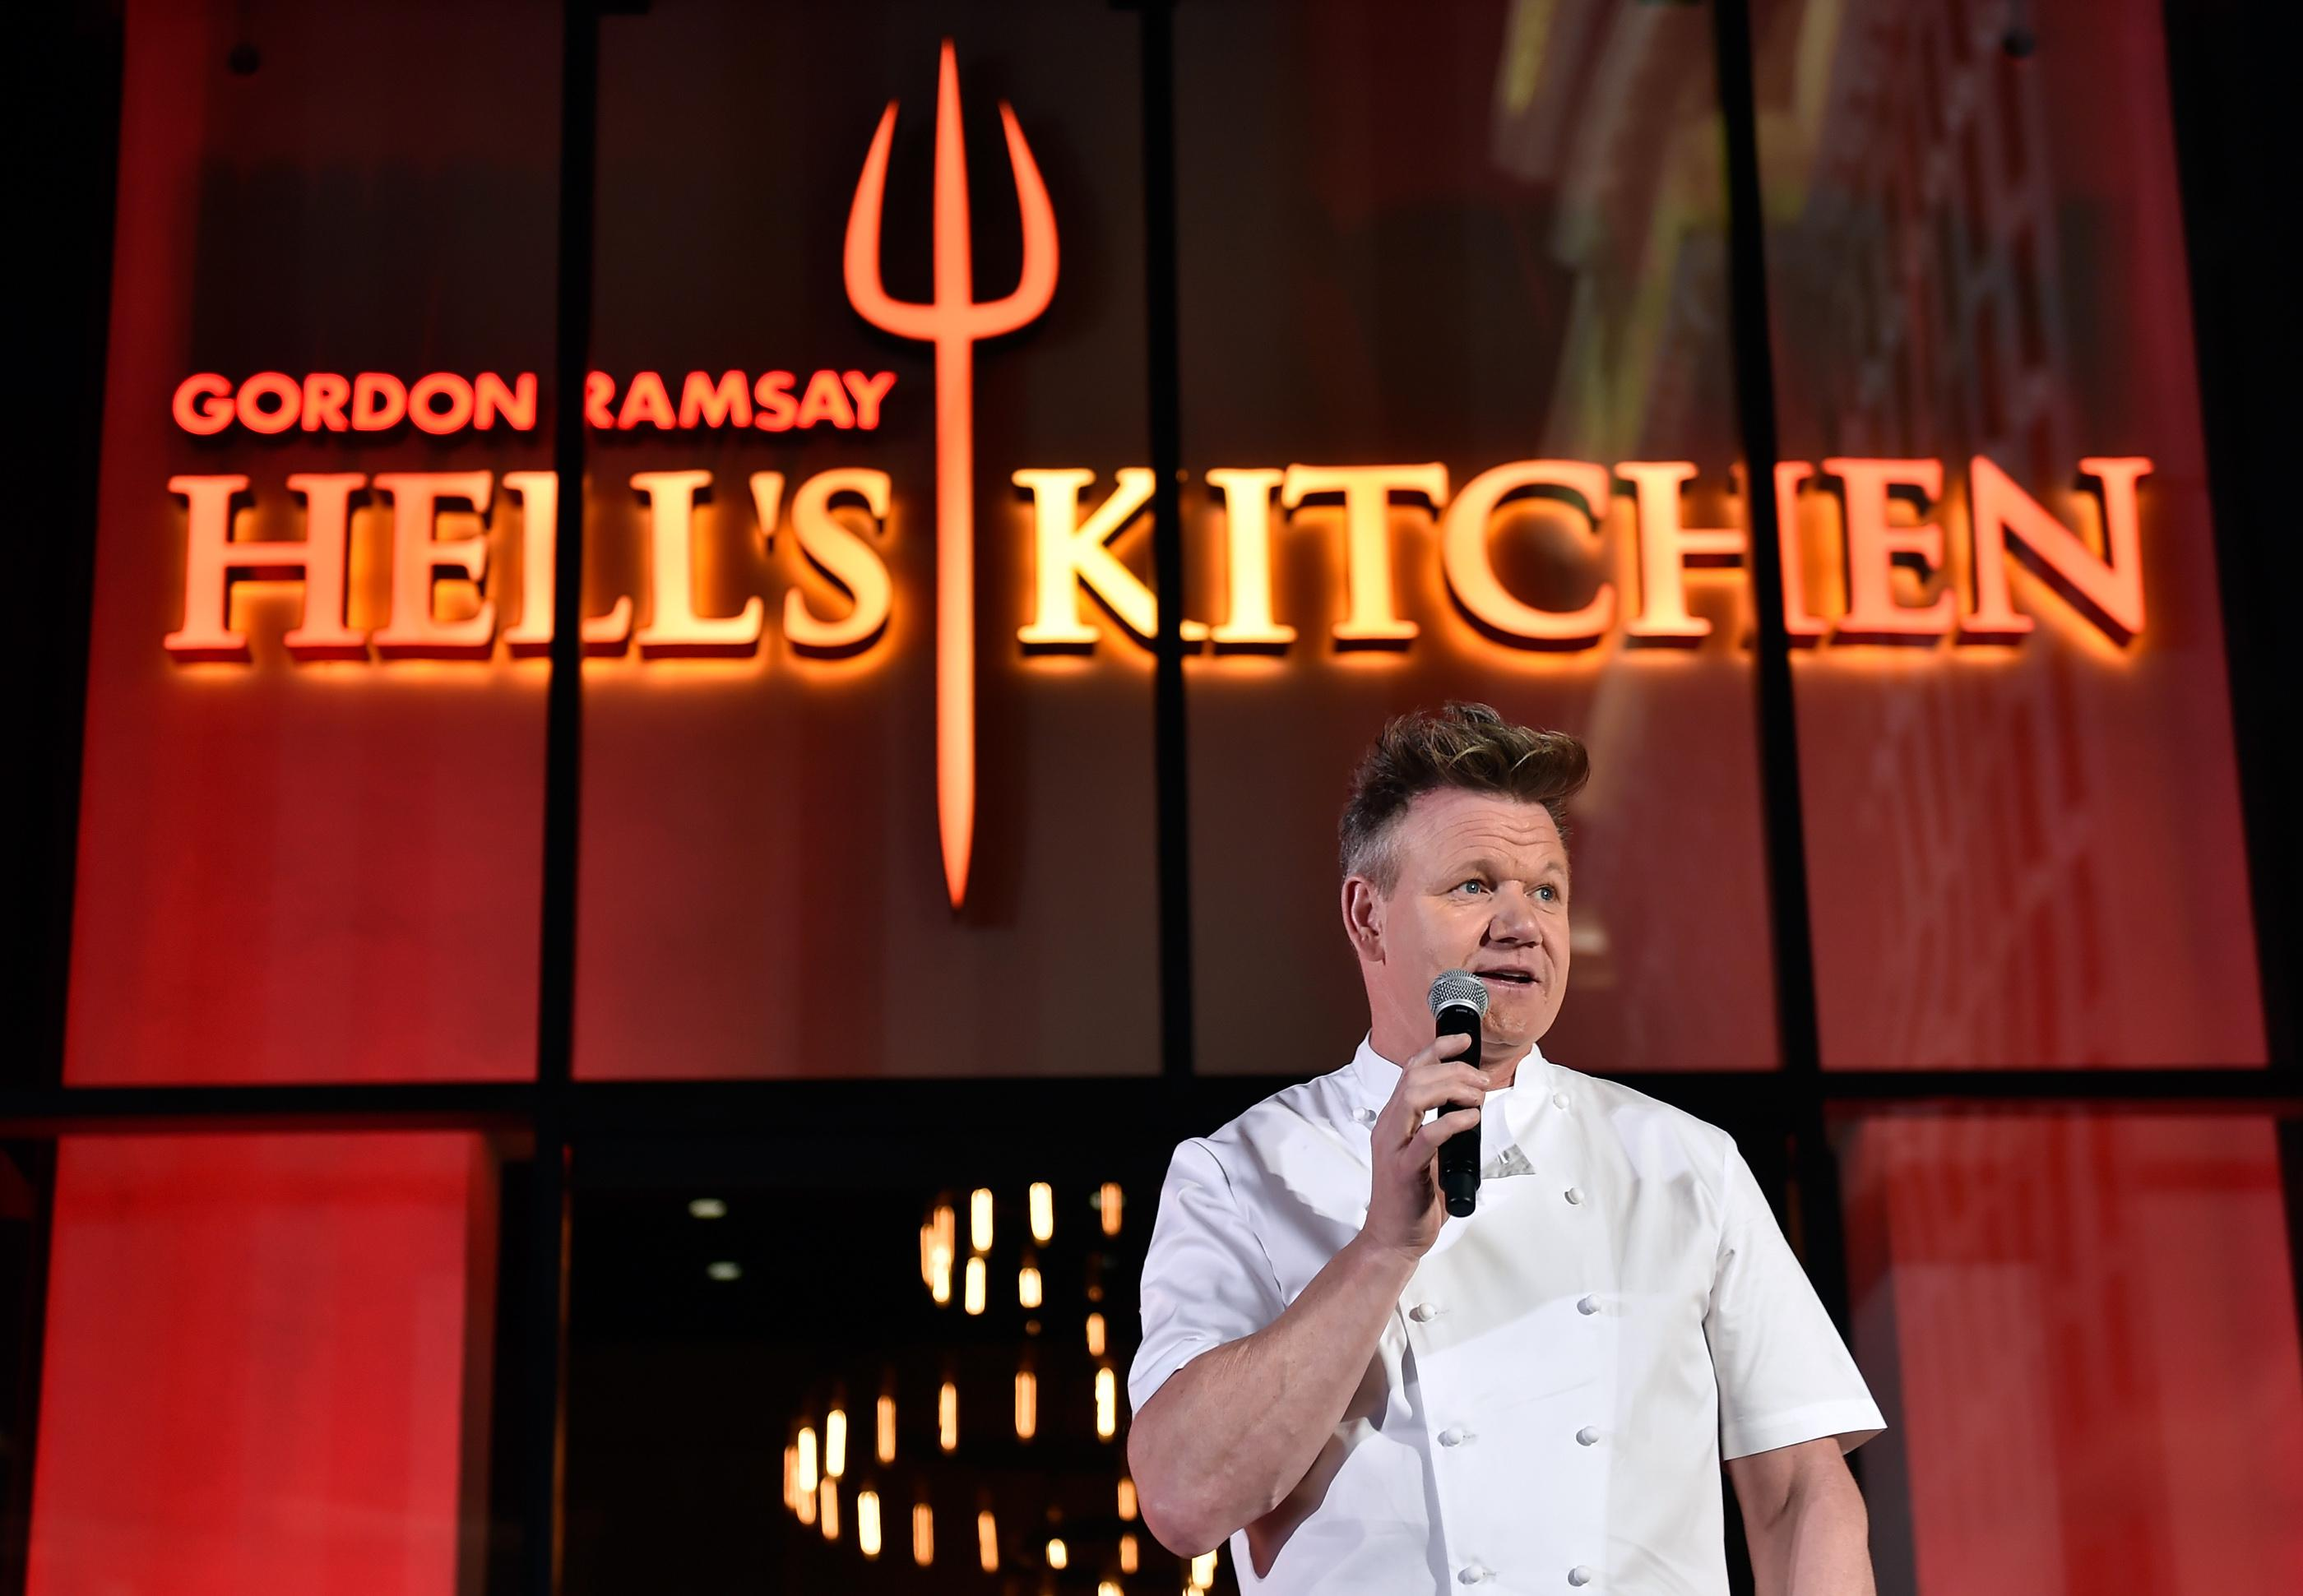 Chef Gordon Ramsay speaks during the grand opening of Gordon Ramsay Hell's Kitchen at Caesars Palace Friday, Jan. 26, 2018, in Las Vegas. CREDIT: David Becker/Las Vegas News Bureau